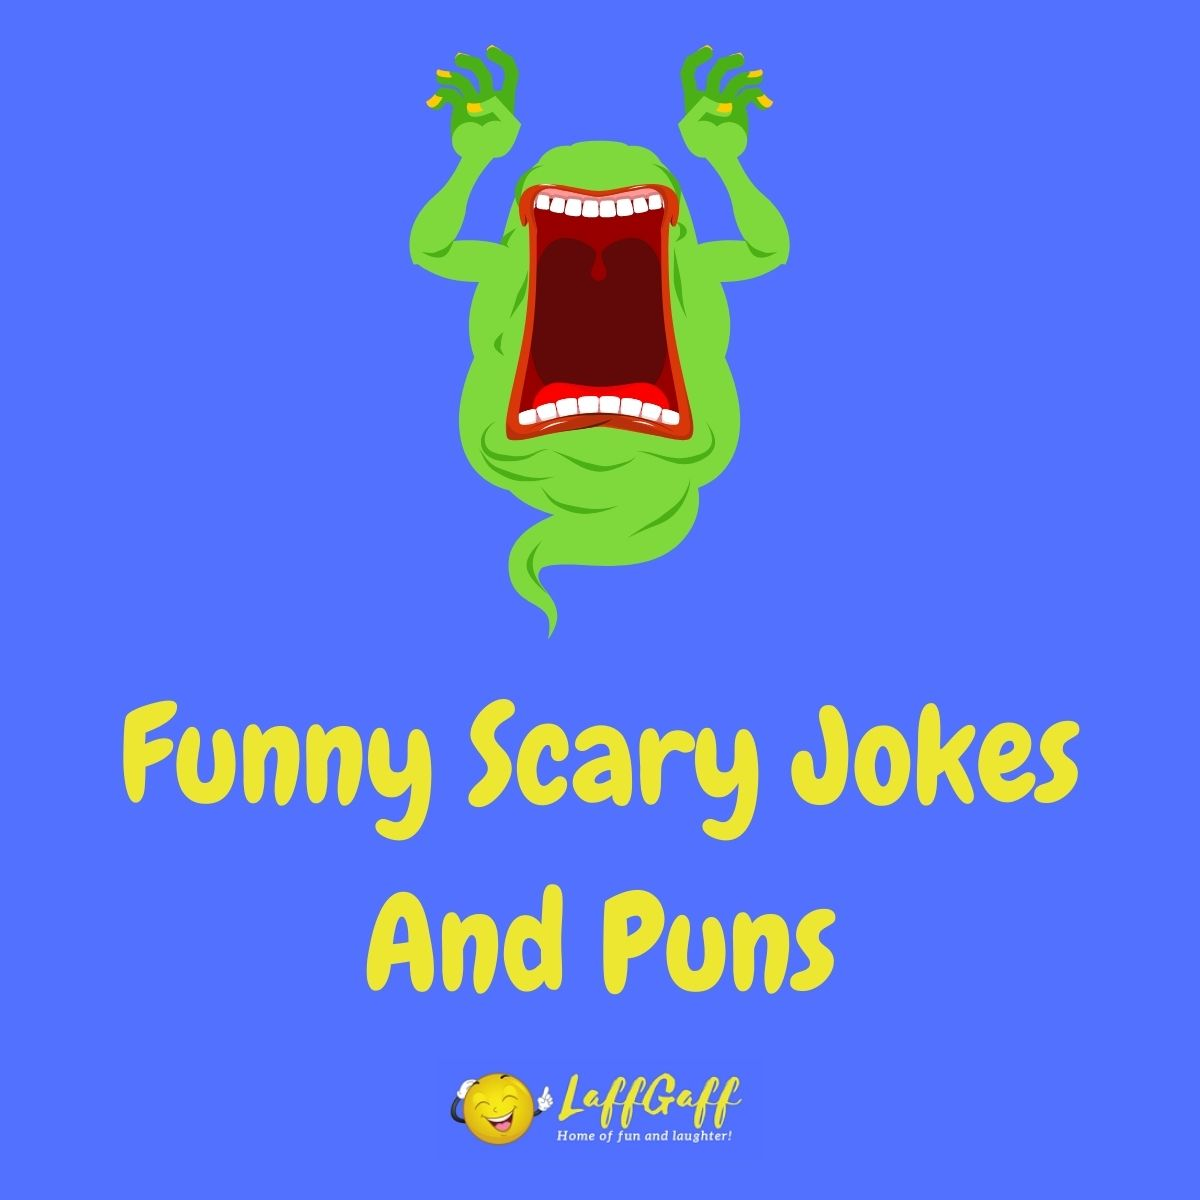 Featured image for a page of funny scary jokes and puns.